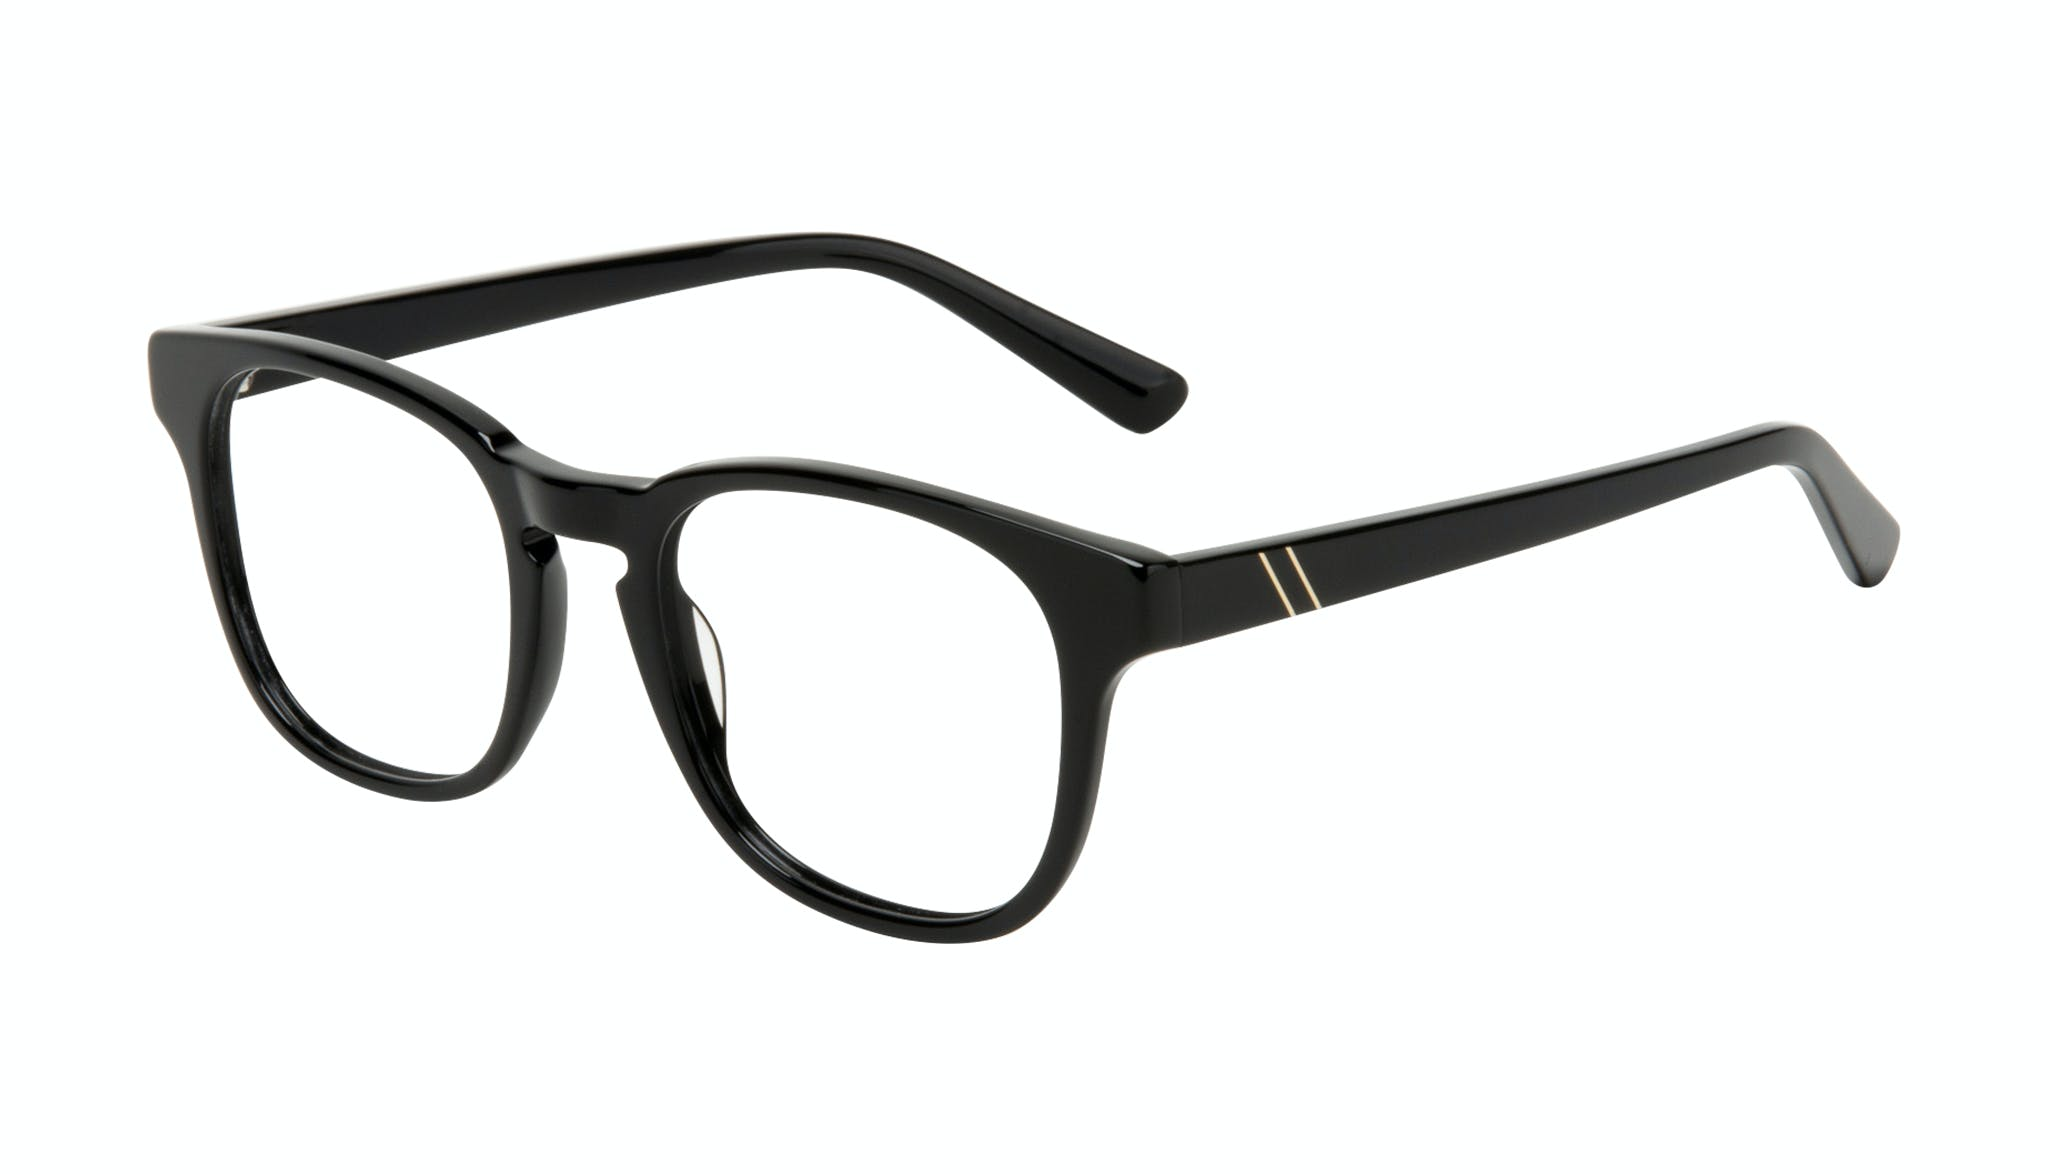 Affordable Fashion Glasses Square Eyeglasses Men Outline Black Tort Tilt